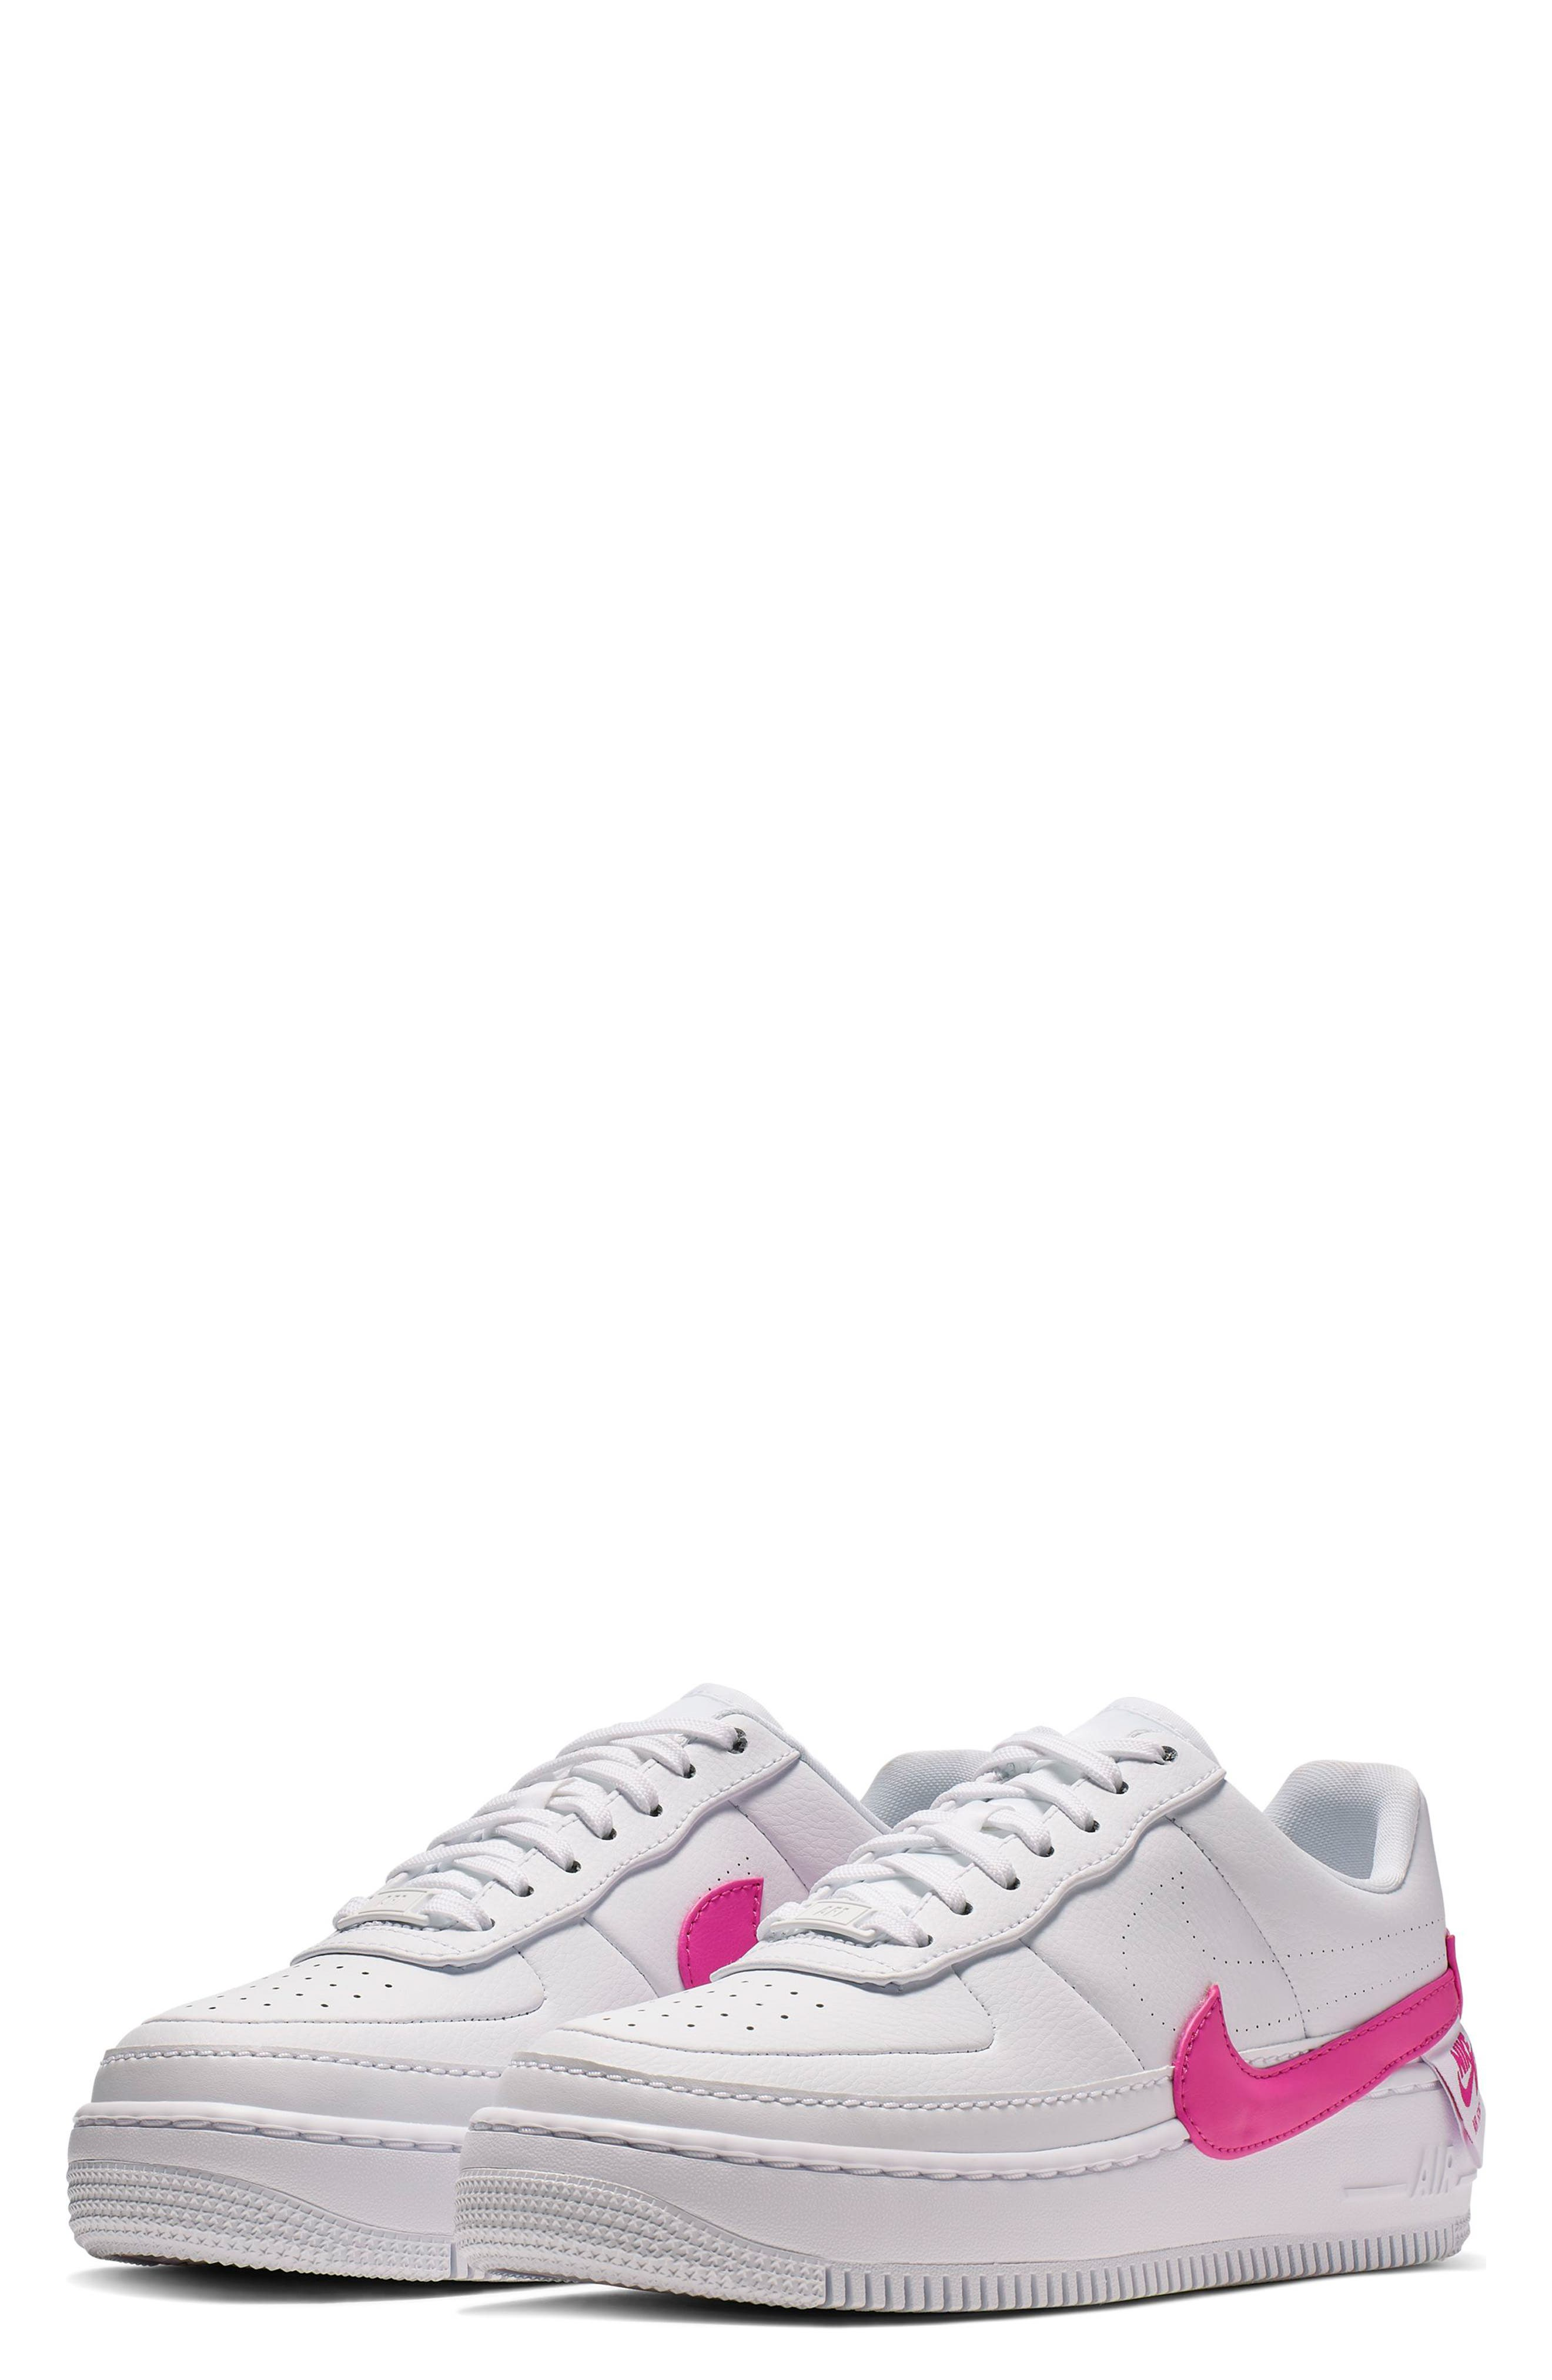 NIKE, Air Force 1 Jester XX Sneaker, Main thumbnail 1, color, WHITE/ LASER FUCHSIA